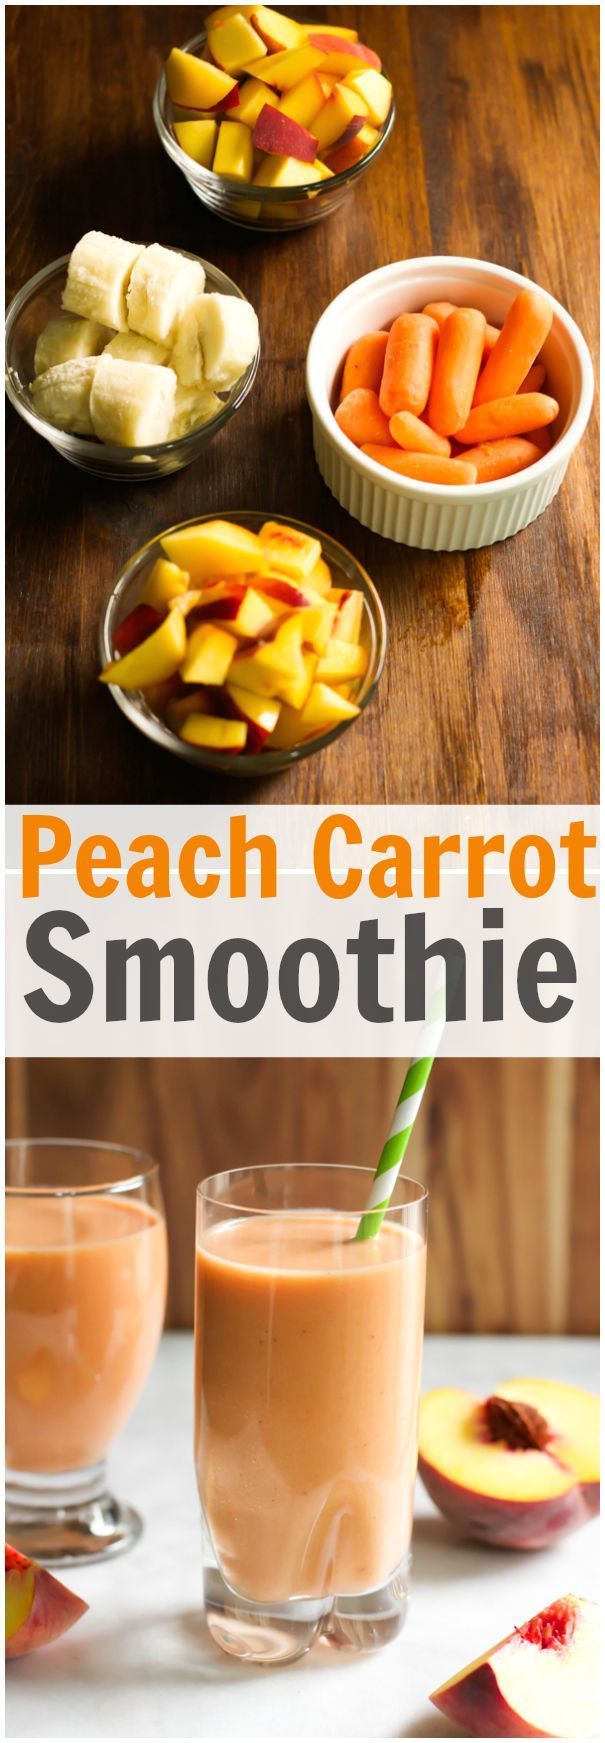 This Peach Carrot Smoothie is dairy-free, delicious and has only 4 ingredients: ...